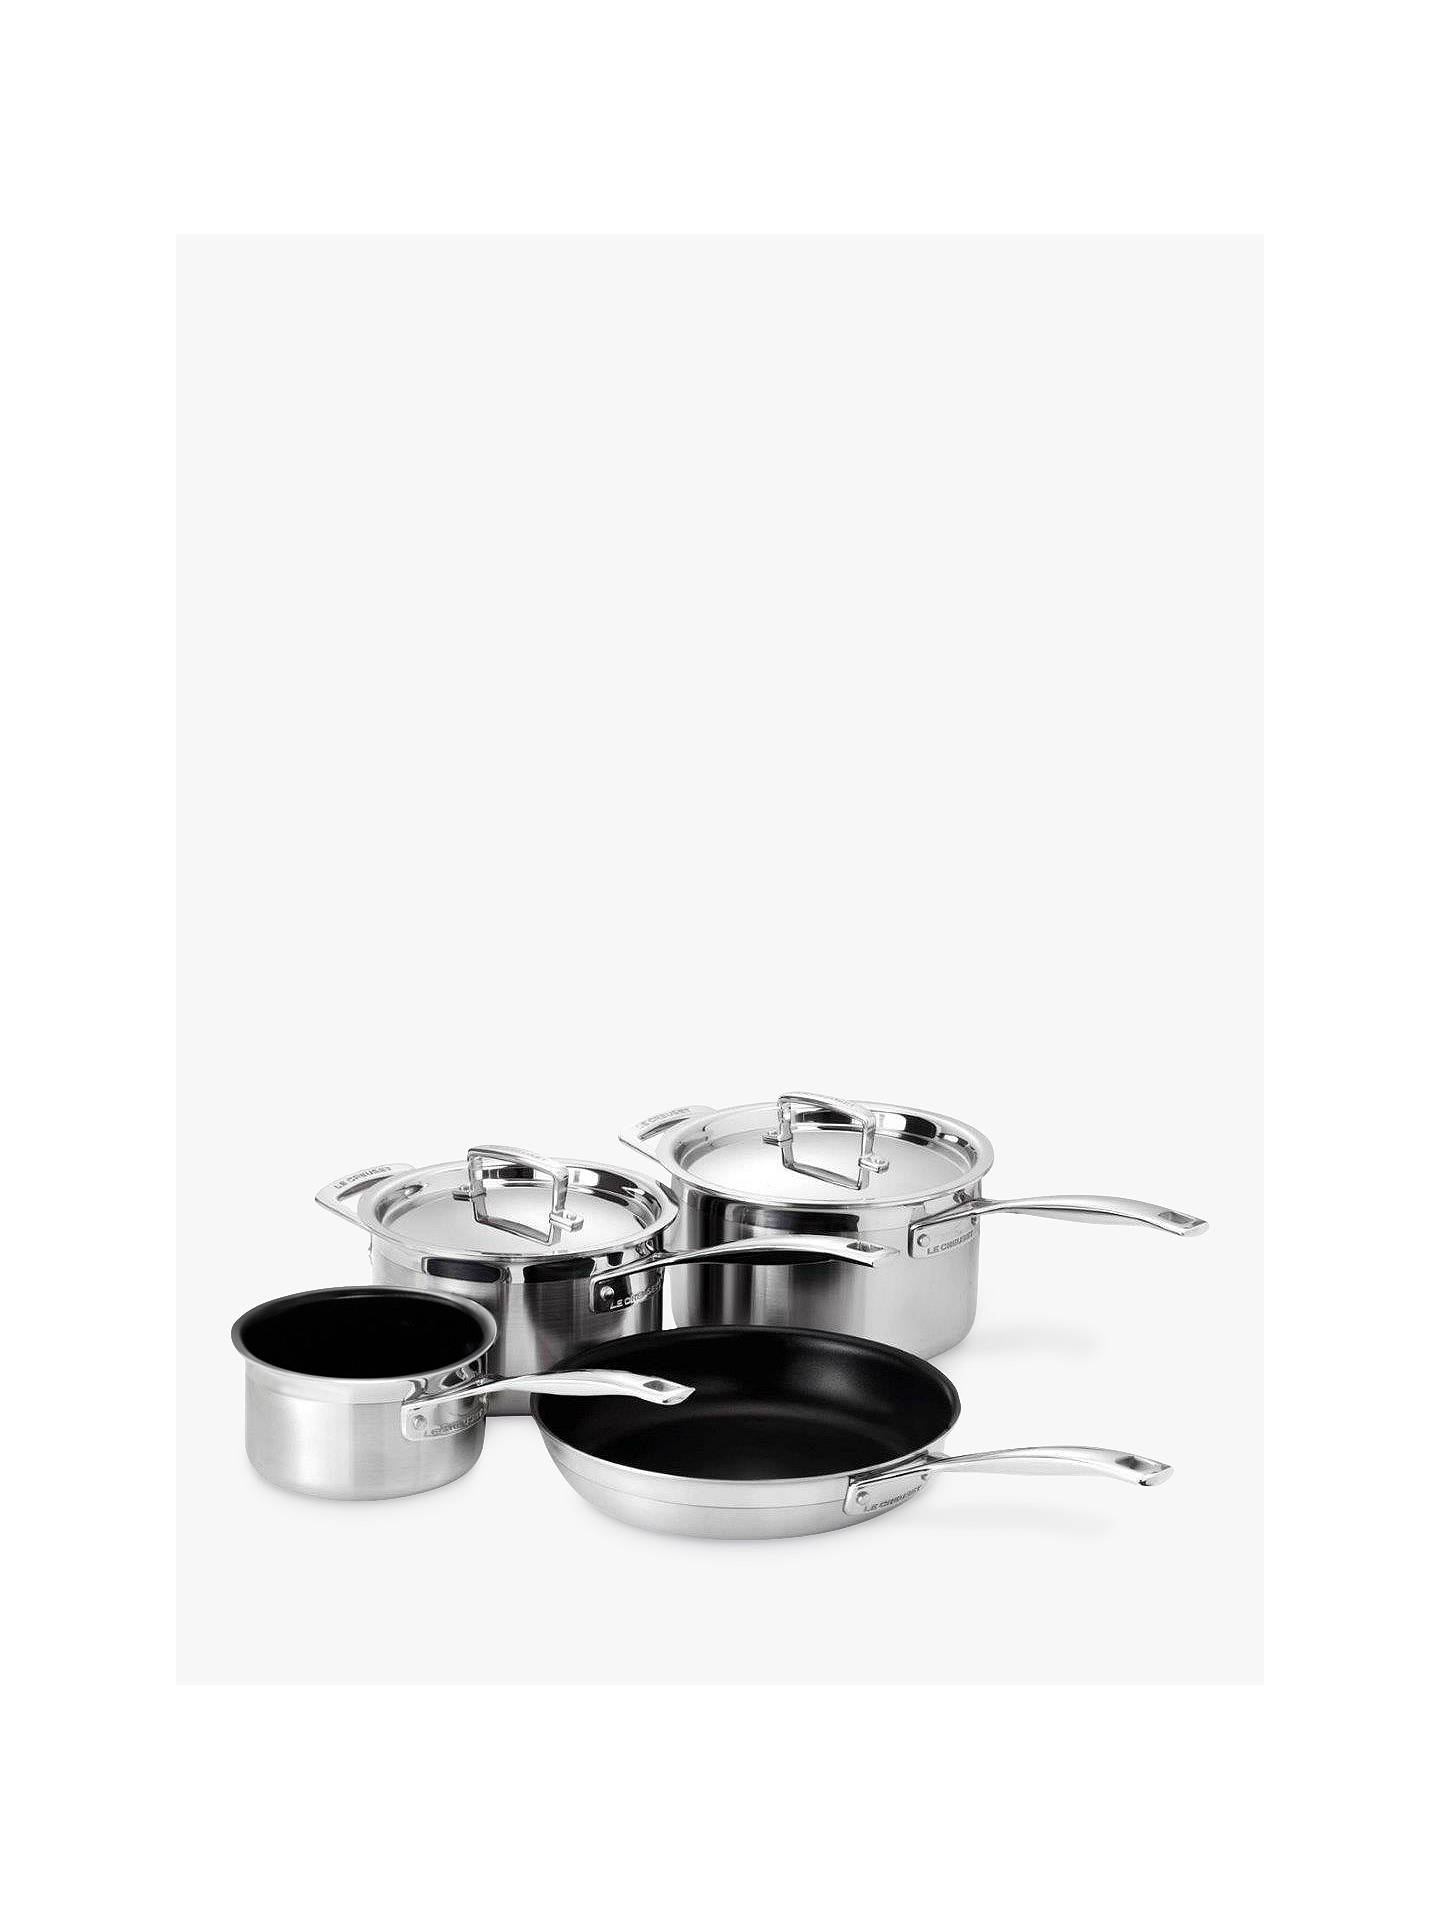 Buy Le Creuset 3-Ply Stainless Steel Saucepans and Frying Pan Set, 4 Pieces Online at johnlewis.com